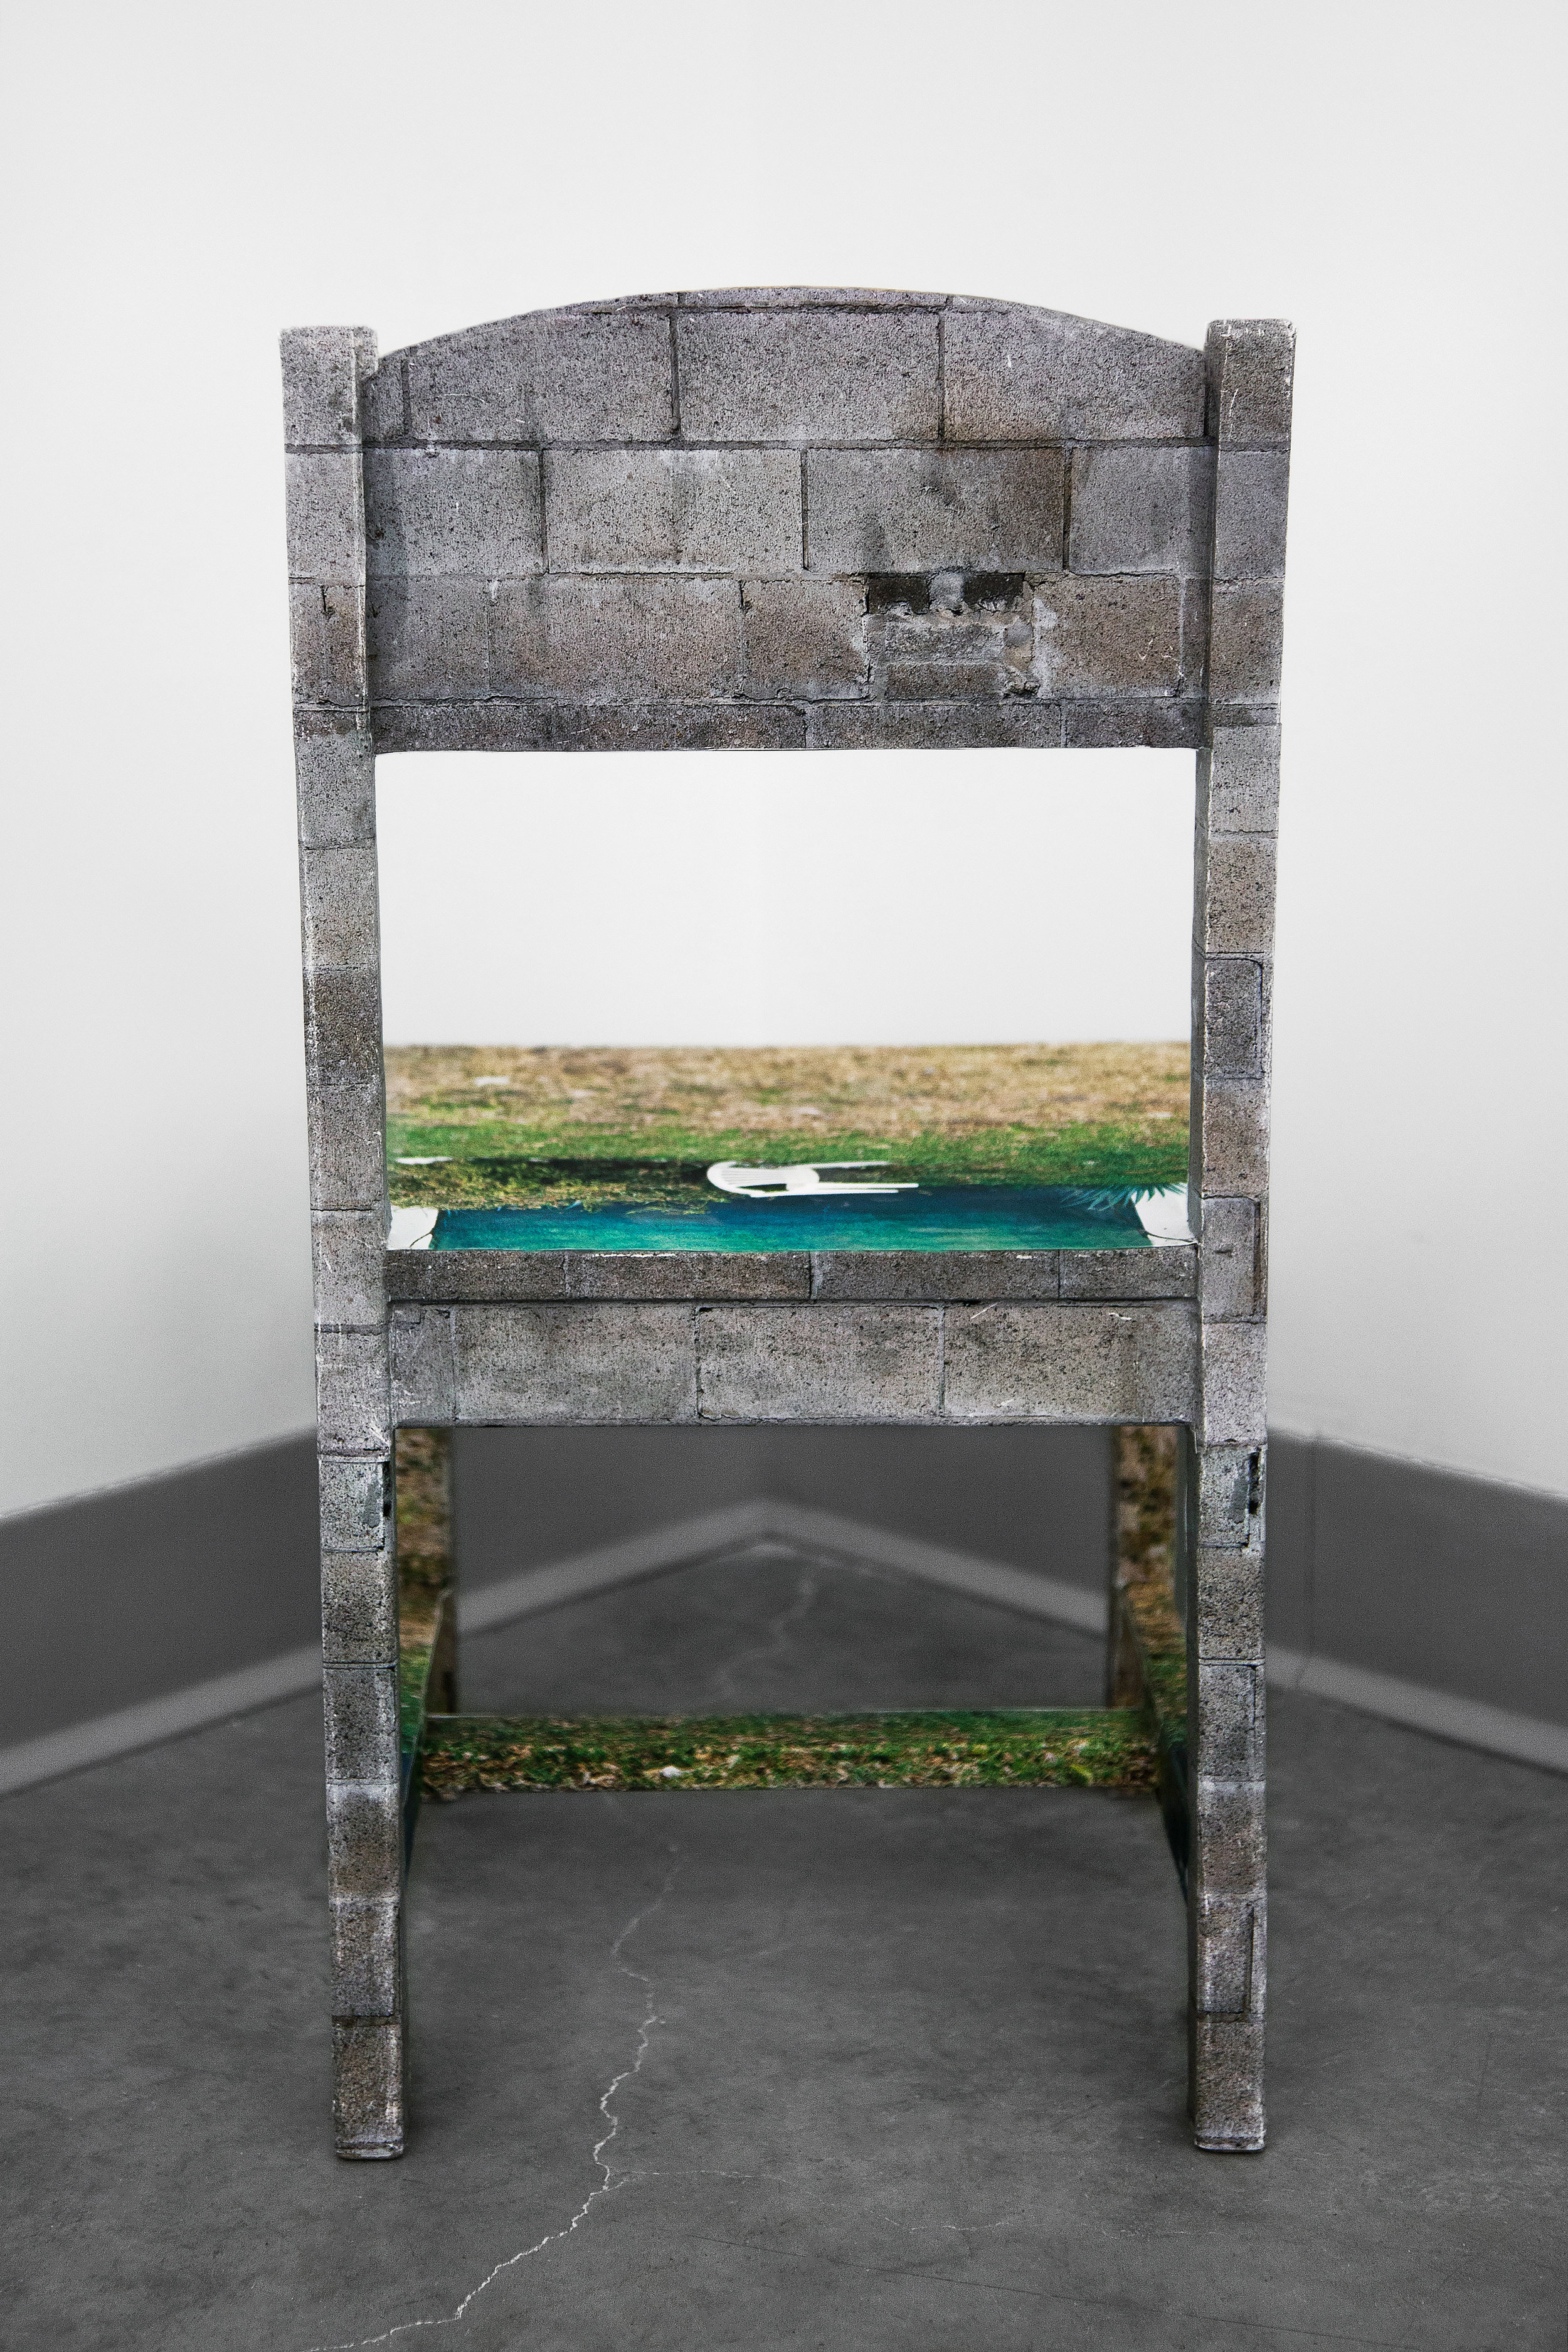 """Chair Mural II , back view, 2014, archival inkjet print, glue, wood chair (inflatable globe not pictured), 11""""x 11.5""""x 21"""" (28 cm x 29.2 cm x 53.3 cm)"""